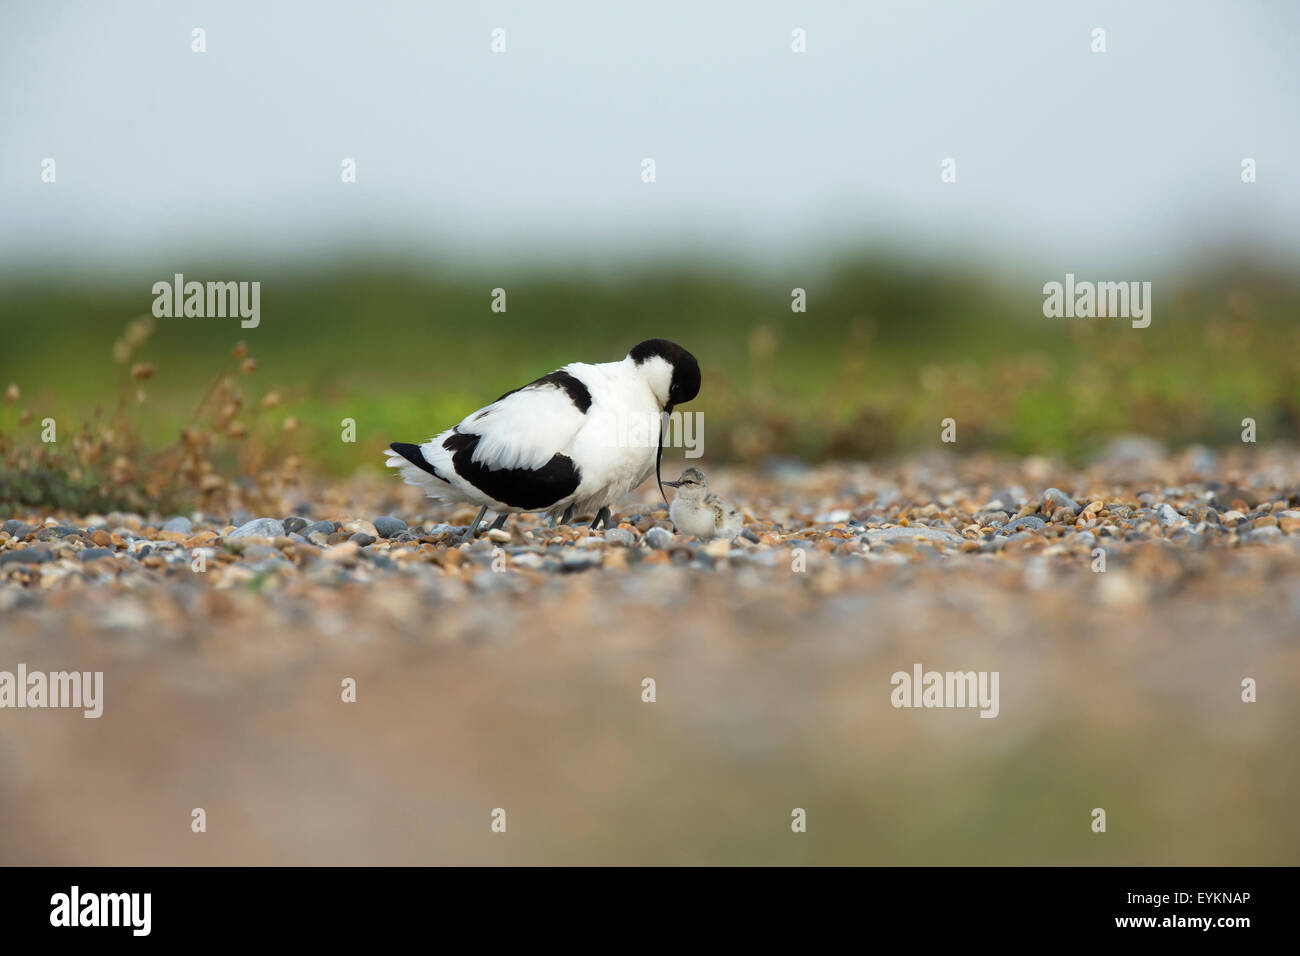 Avocet (Recurvirostra avosetta) protecting its chicks on the beach - Stock Image